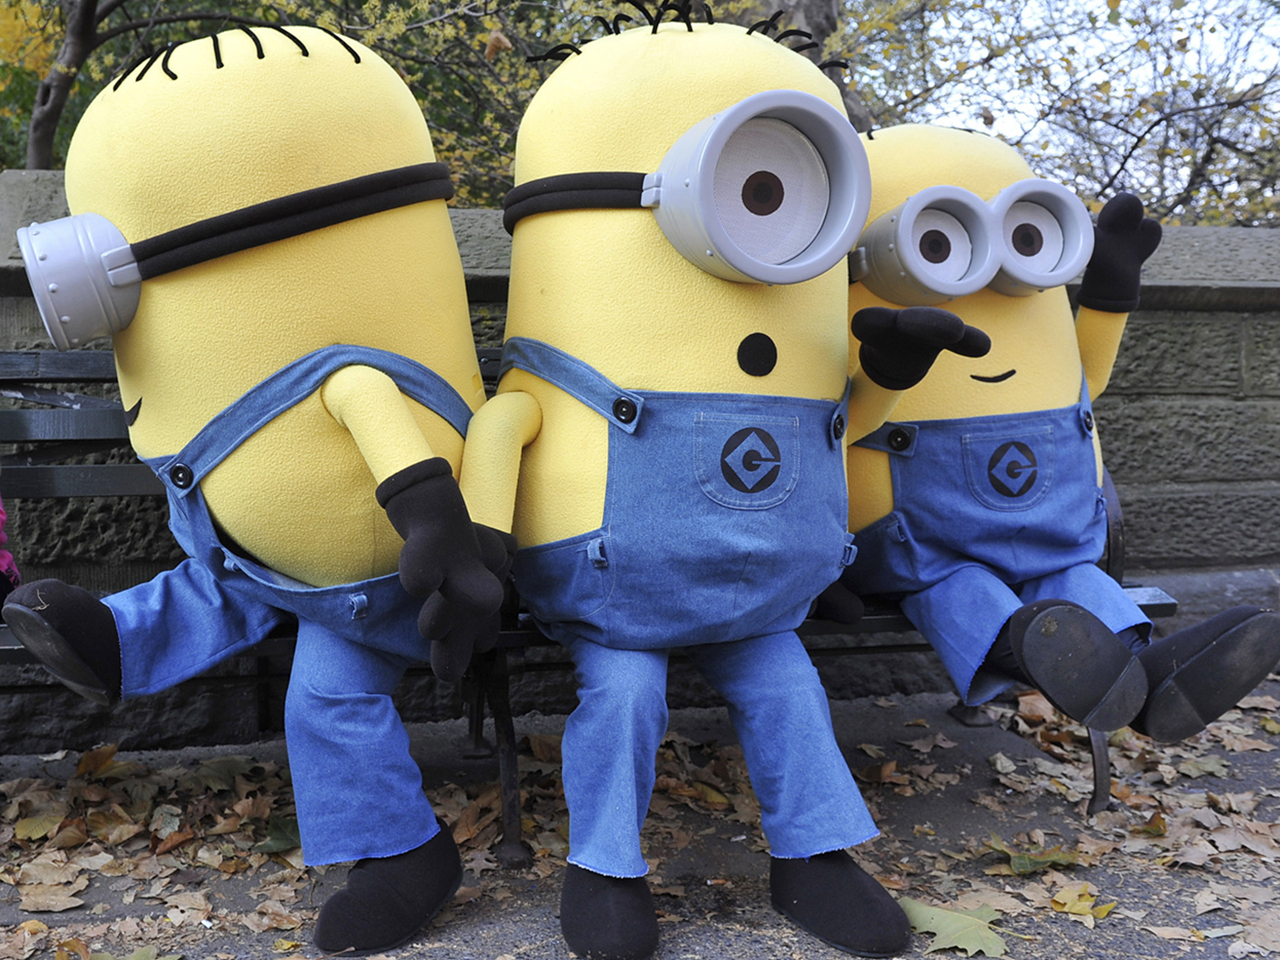 Most-searched Halloween costumes? Minions and Miley